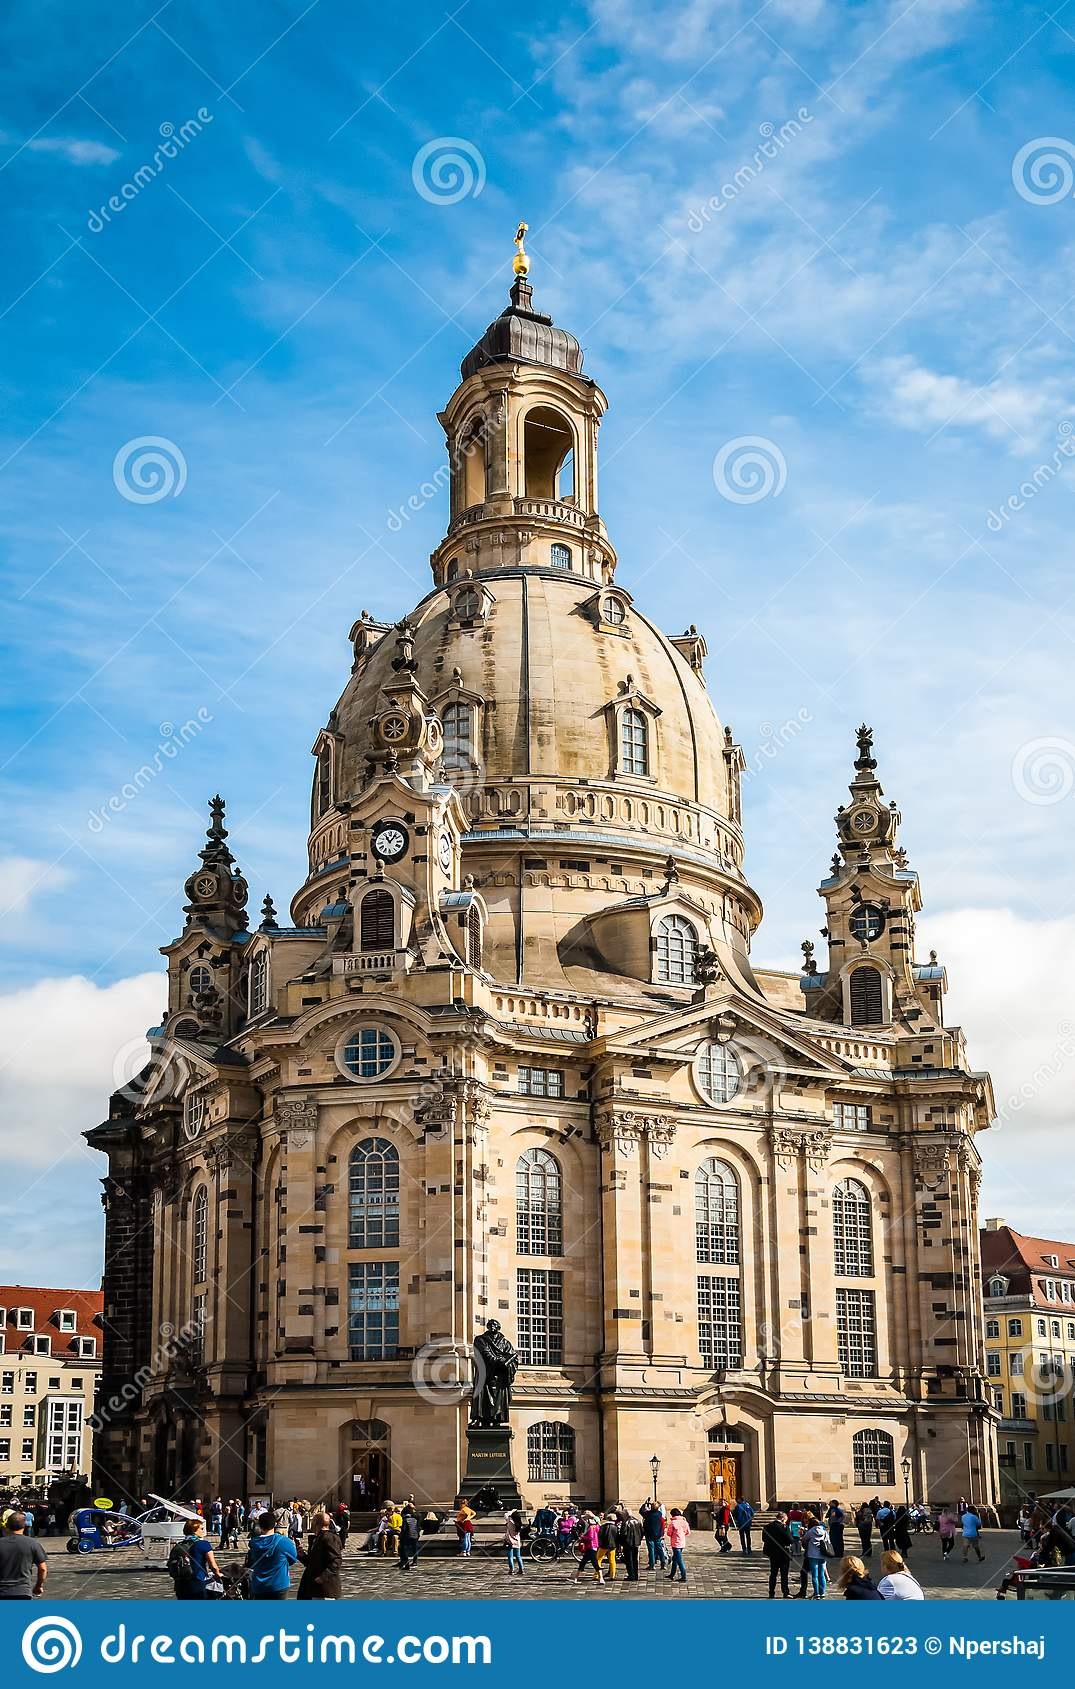 Frauenkirche Our Lady church and statue of Martin Luther in the center of old town in Dresden, Germany